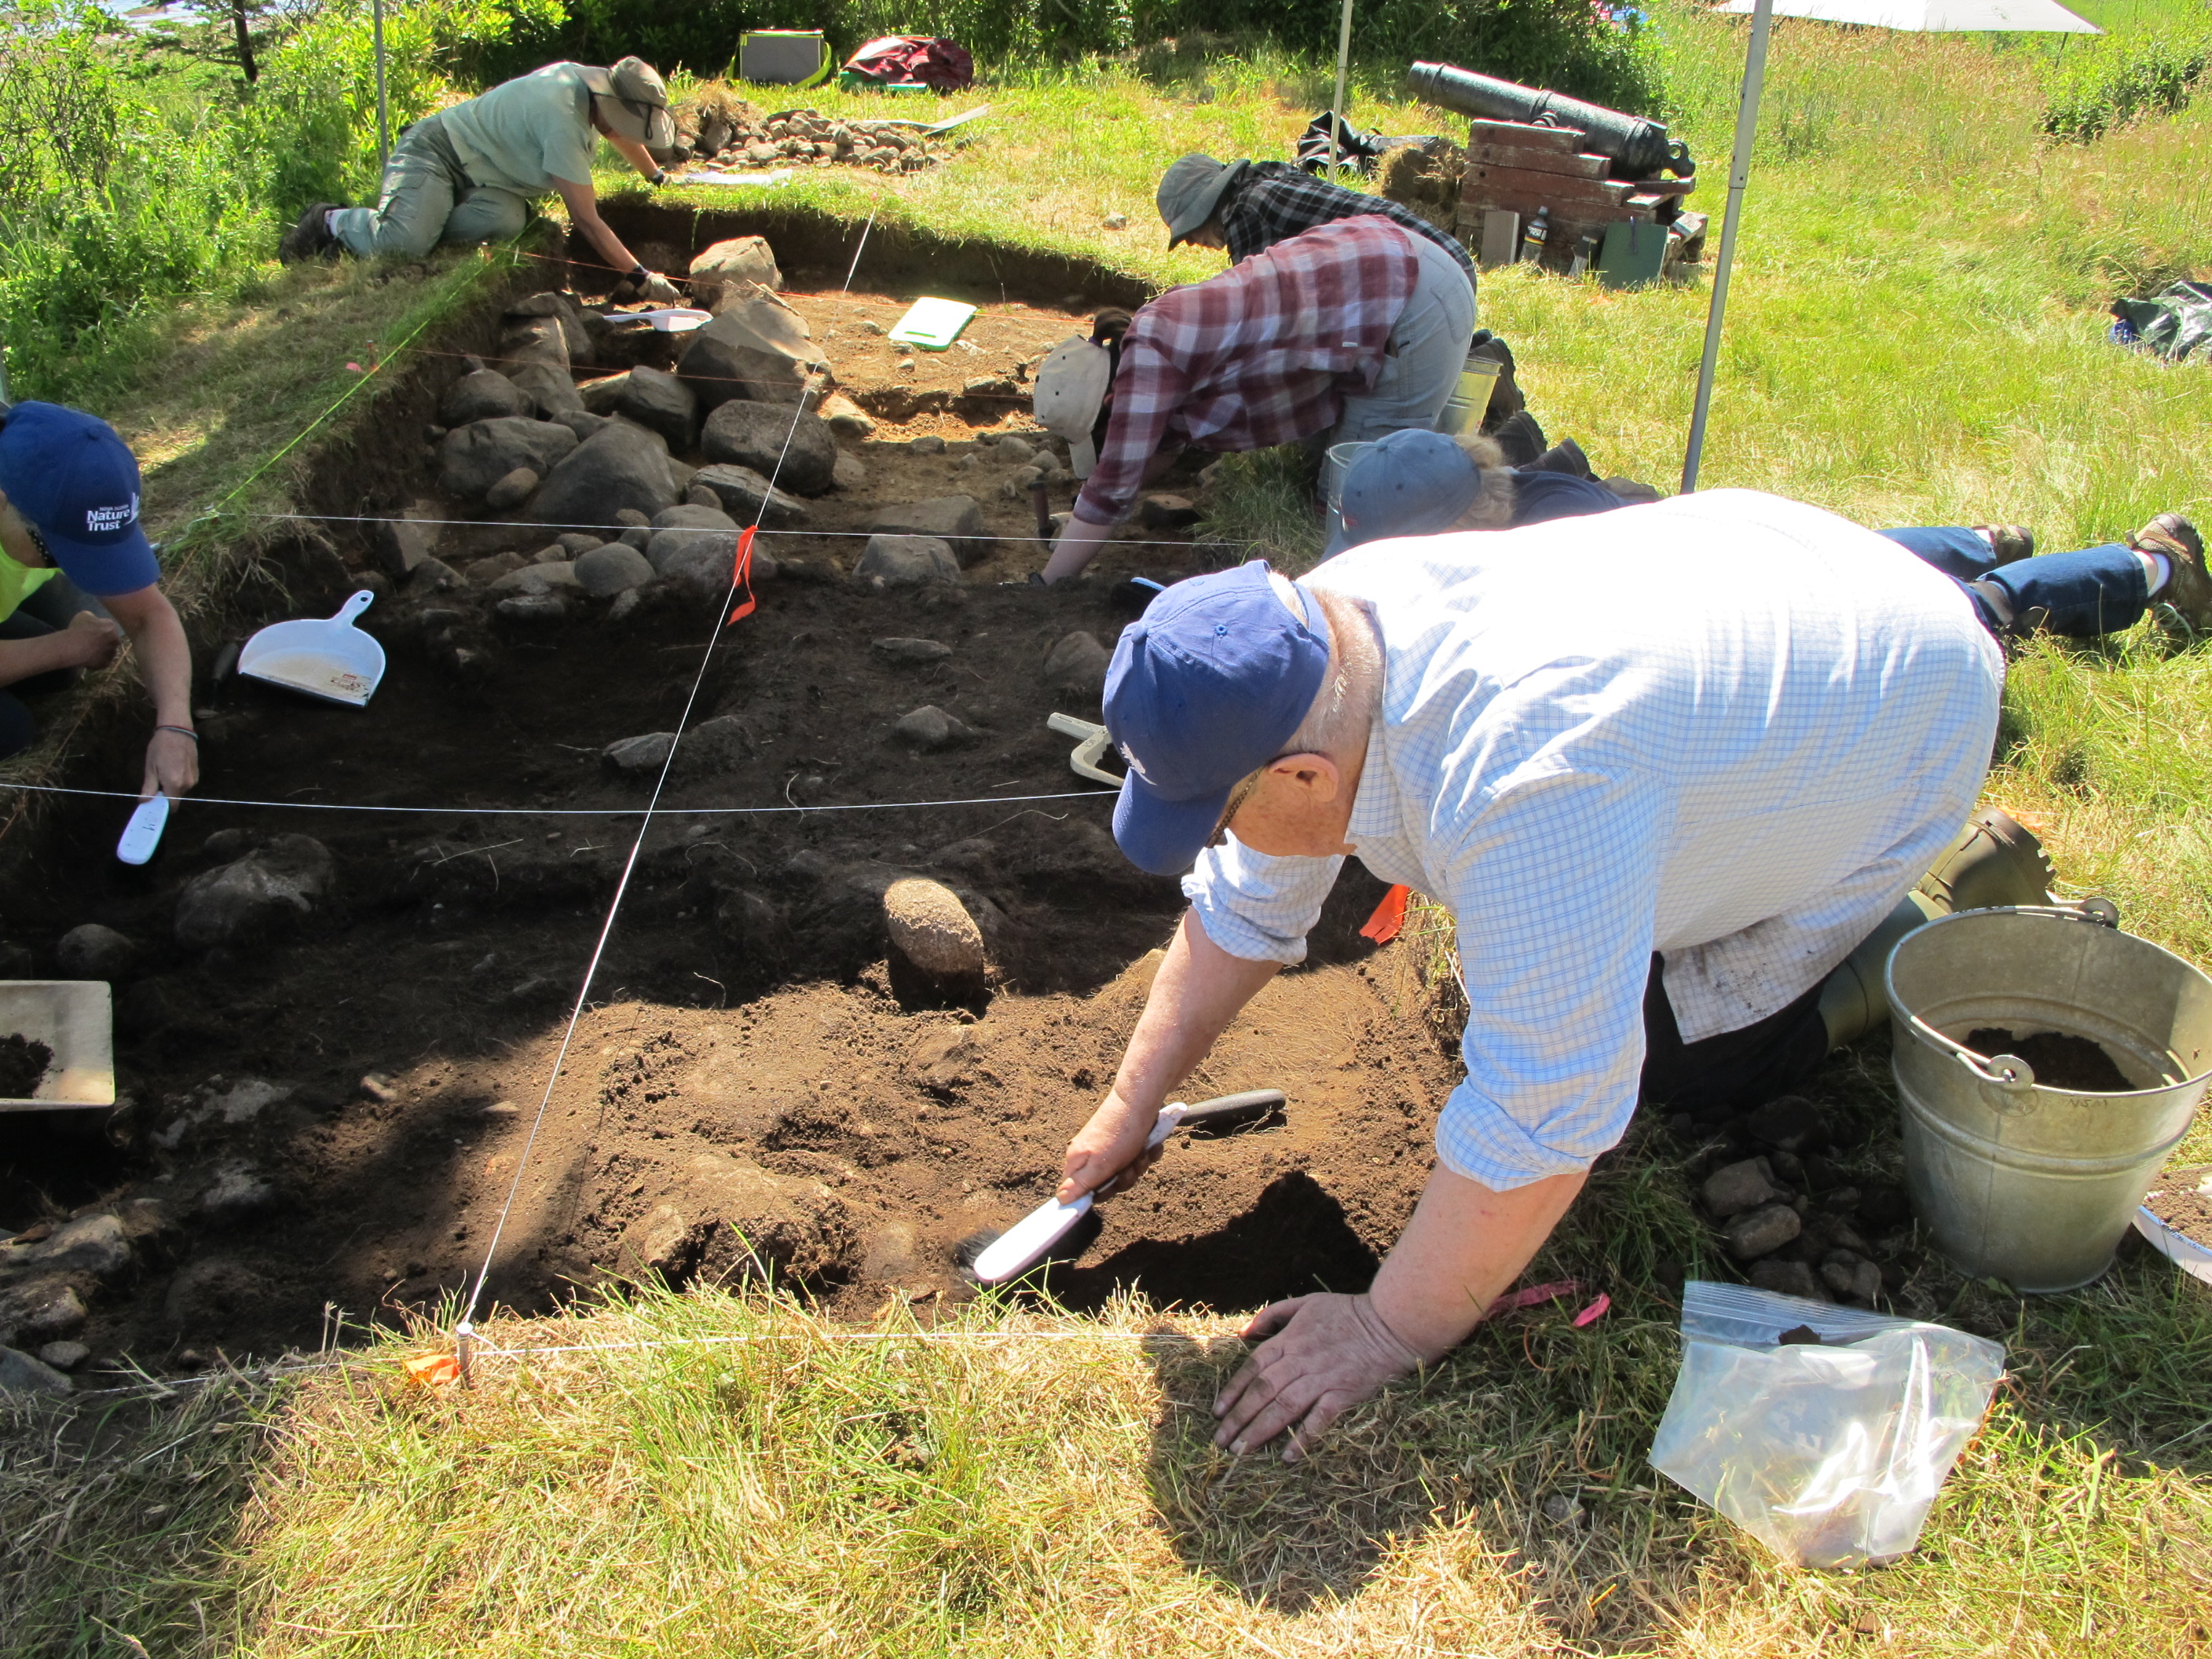 Another beautiful day for the public dig. Keith was signed up last year and was delighted to rejoin the excavation efforts in 2019.